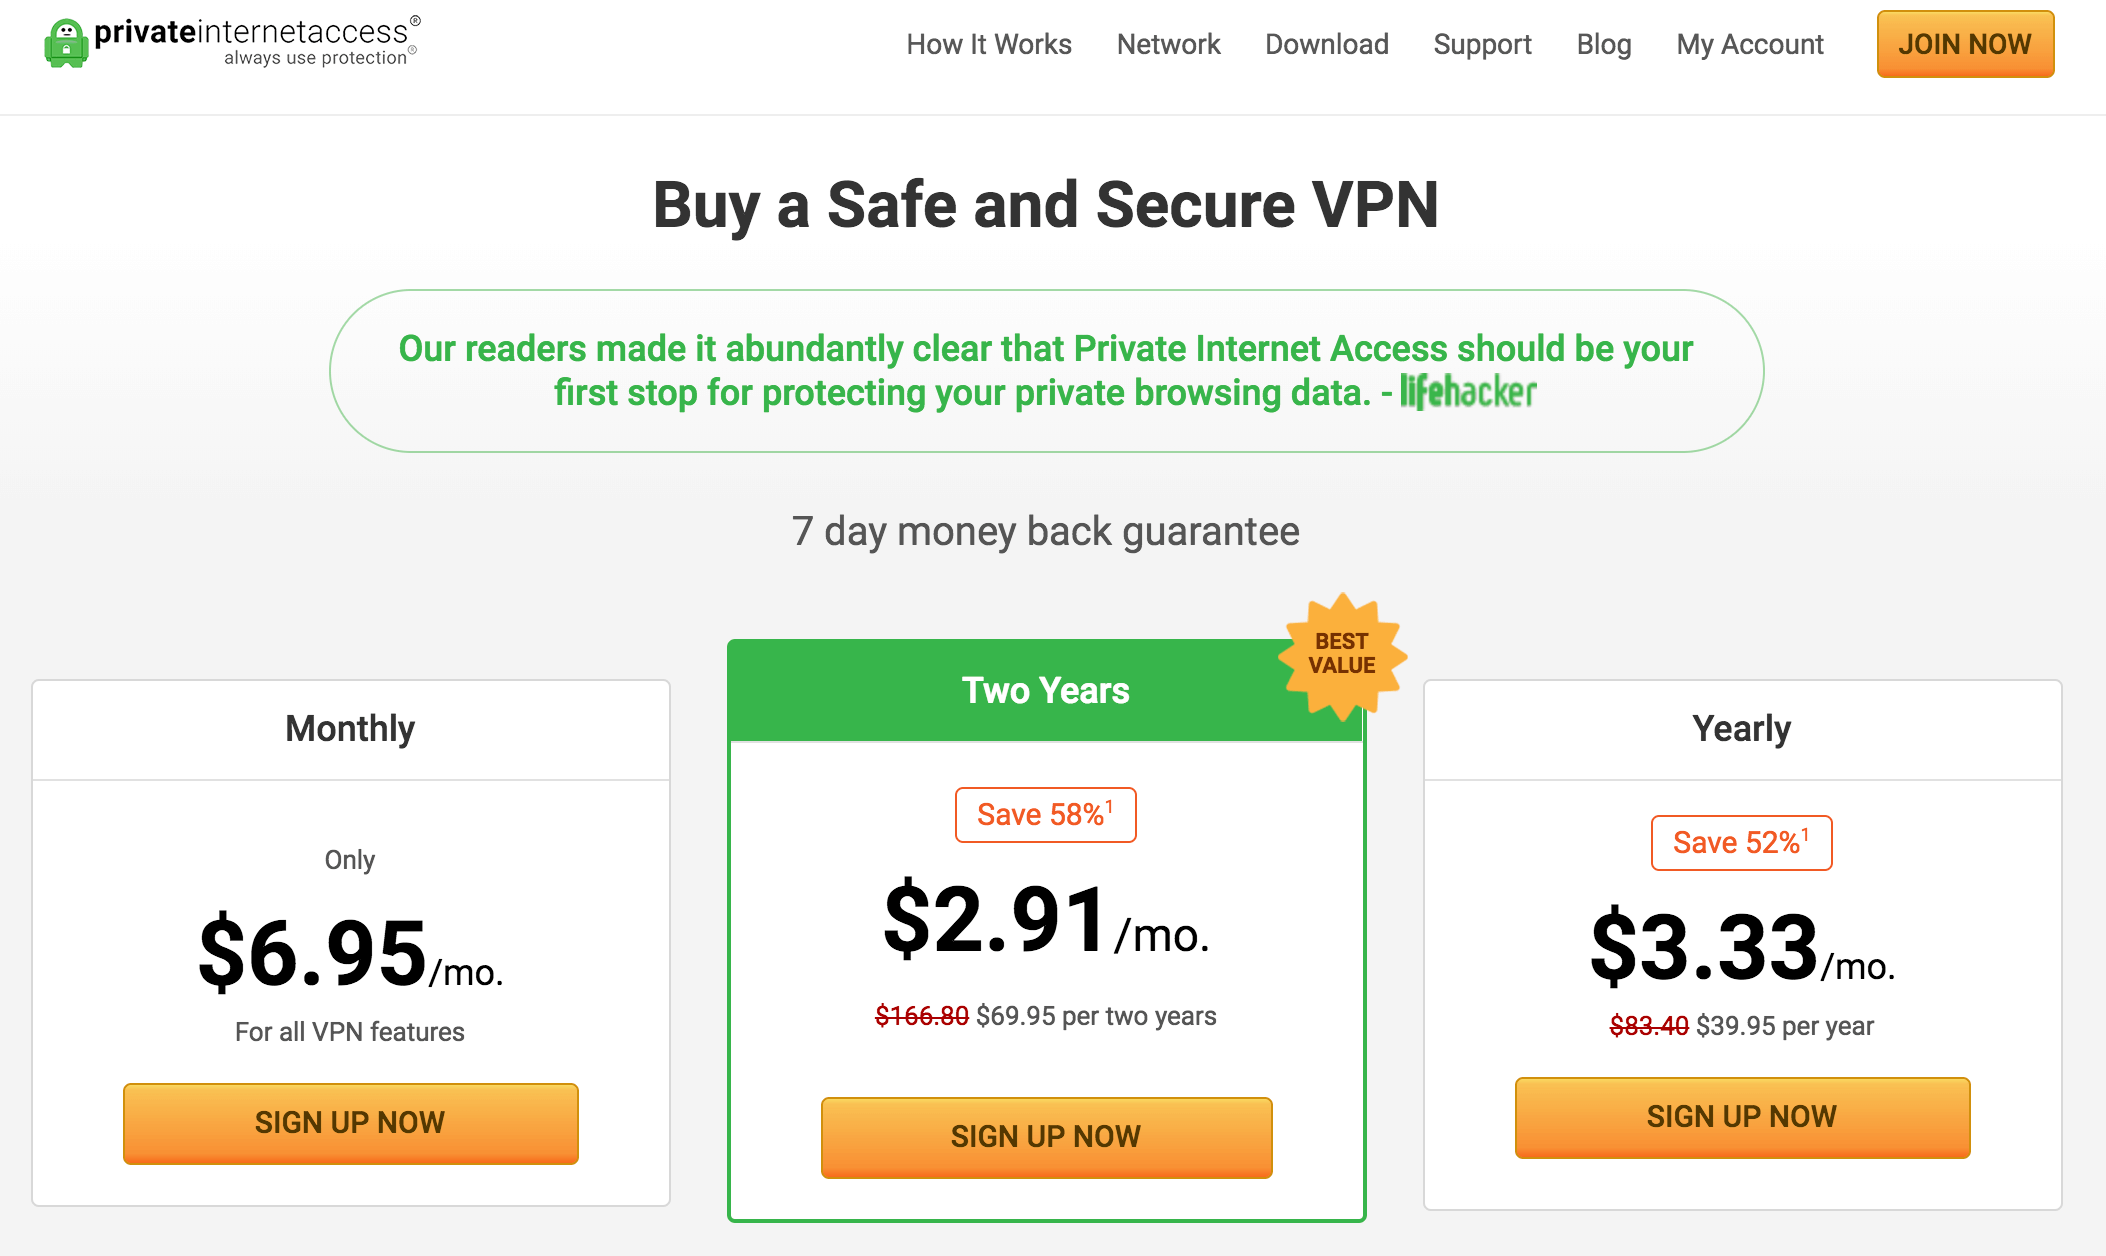 private internet access moneyback